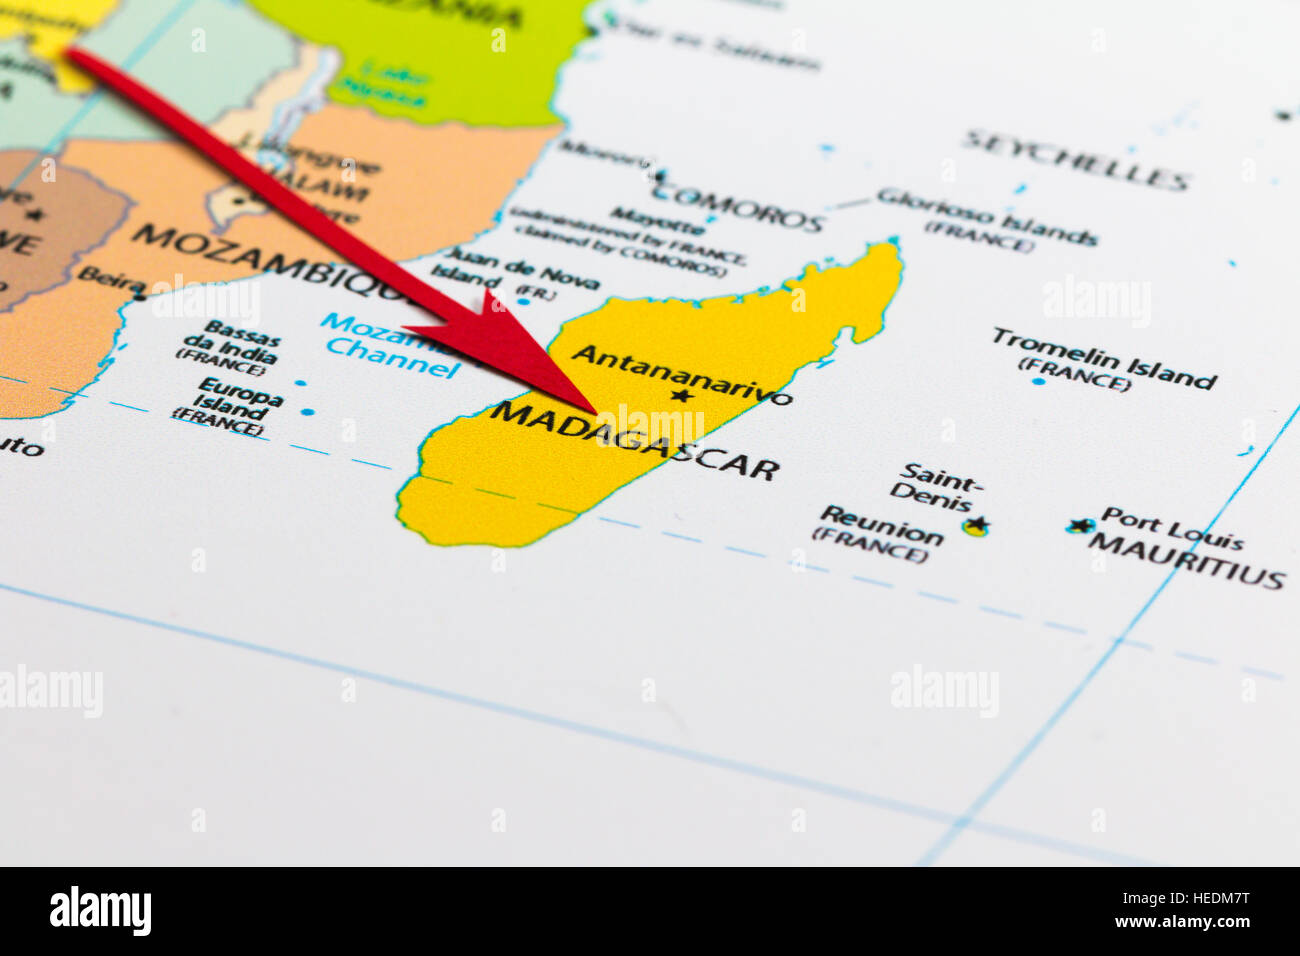 Red arrow pointing Madagascar on the map of Africa continent Stock